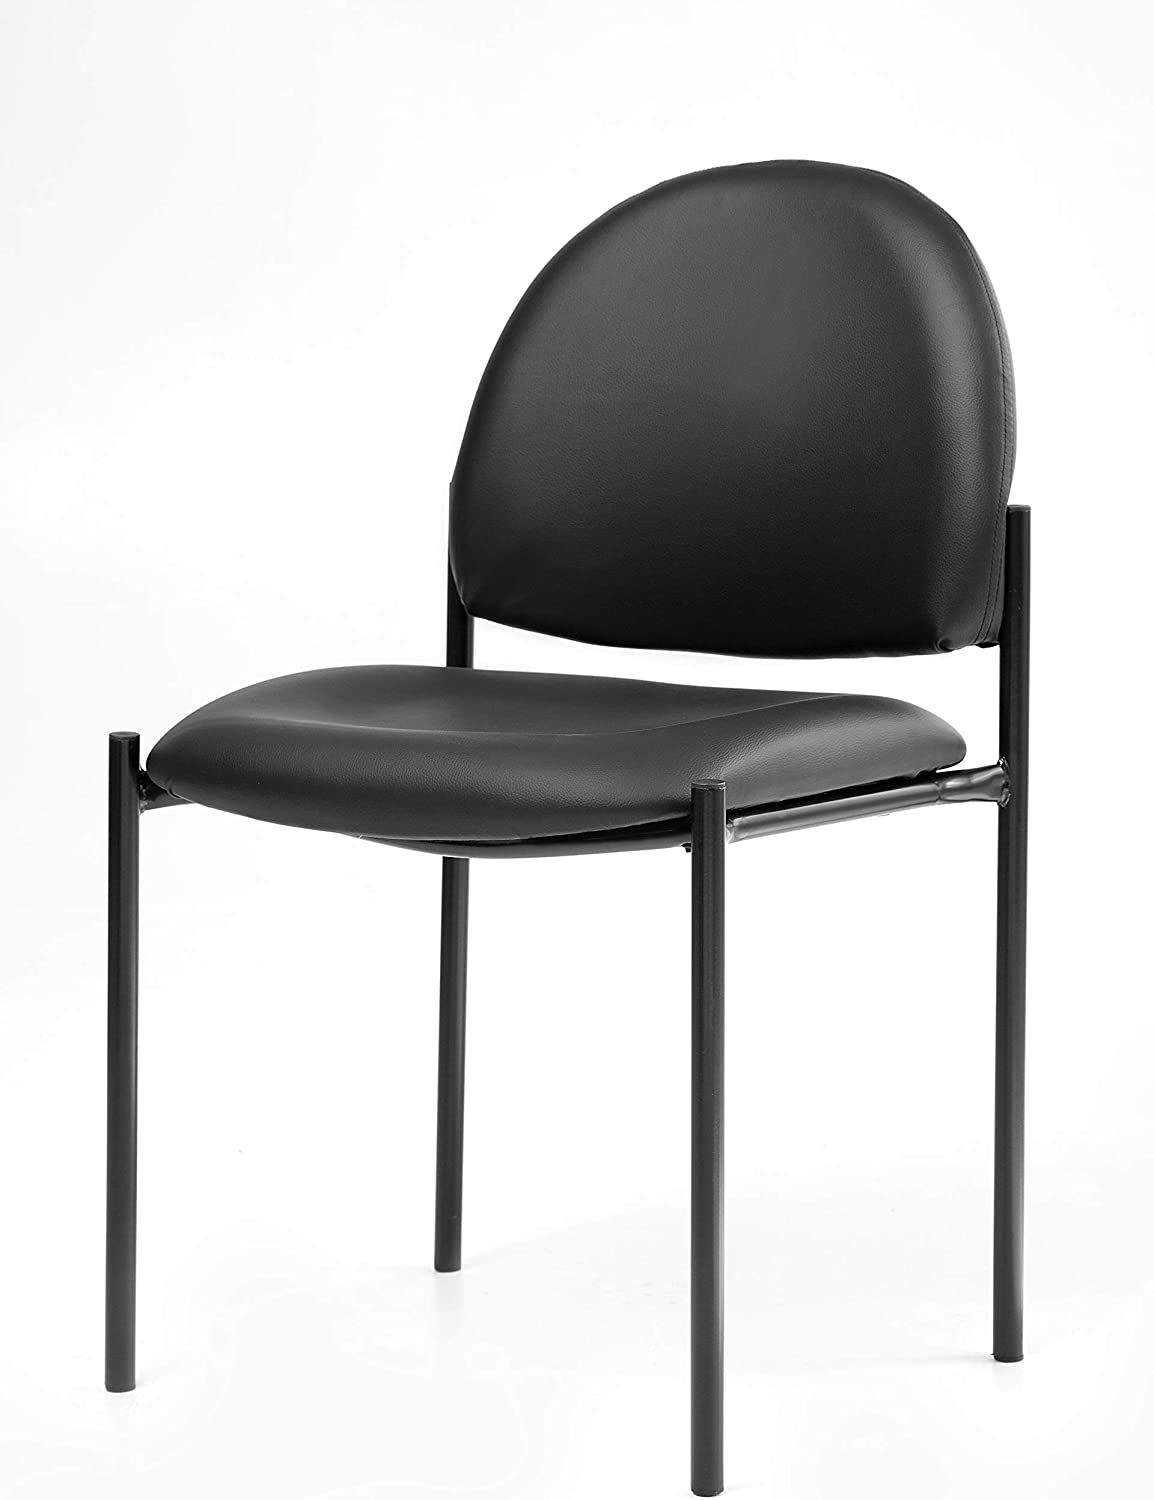 Office Factor Stackable Guest Chair, Vinyl Upholstered Waiting Room Chair for Business, Doctor's Office, Lobbies, Extra Seating (Black-Vinyl NO ARMS)